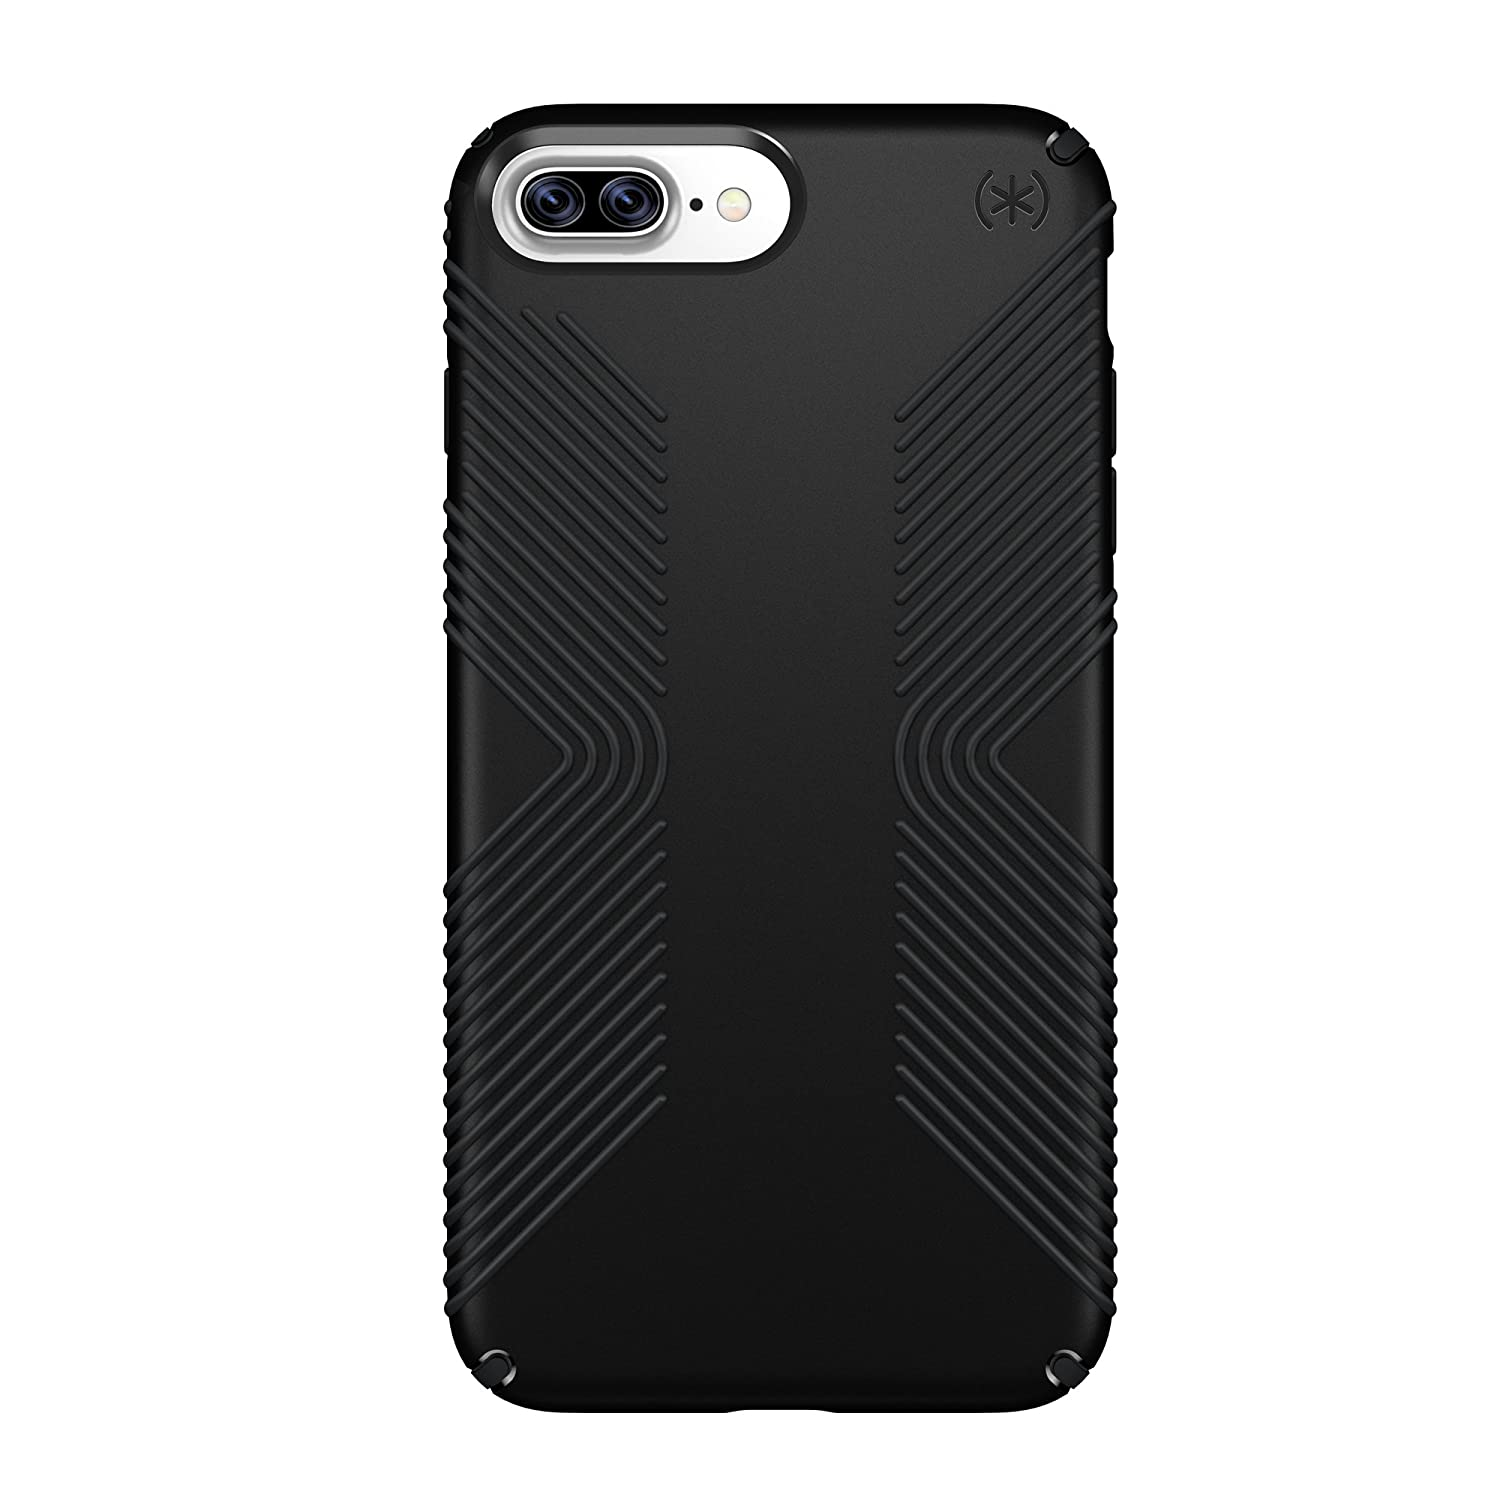 Speck Products Presidio Grip Case for iPhone 7 Plus